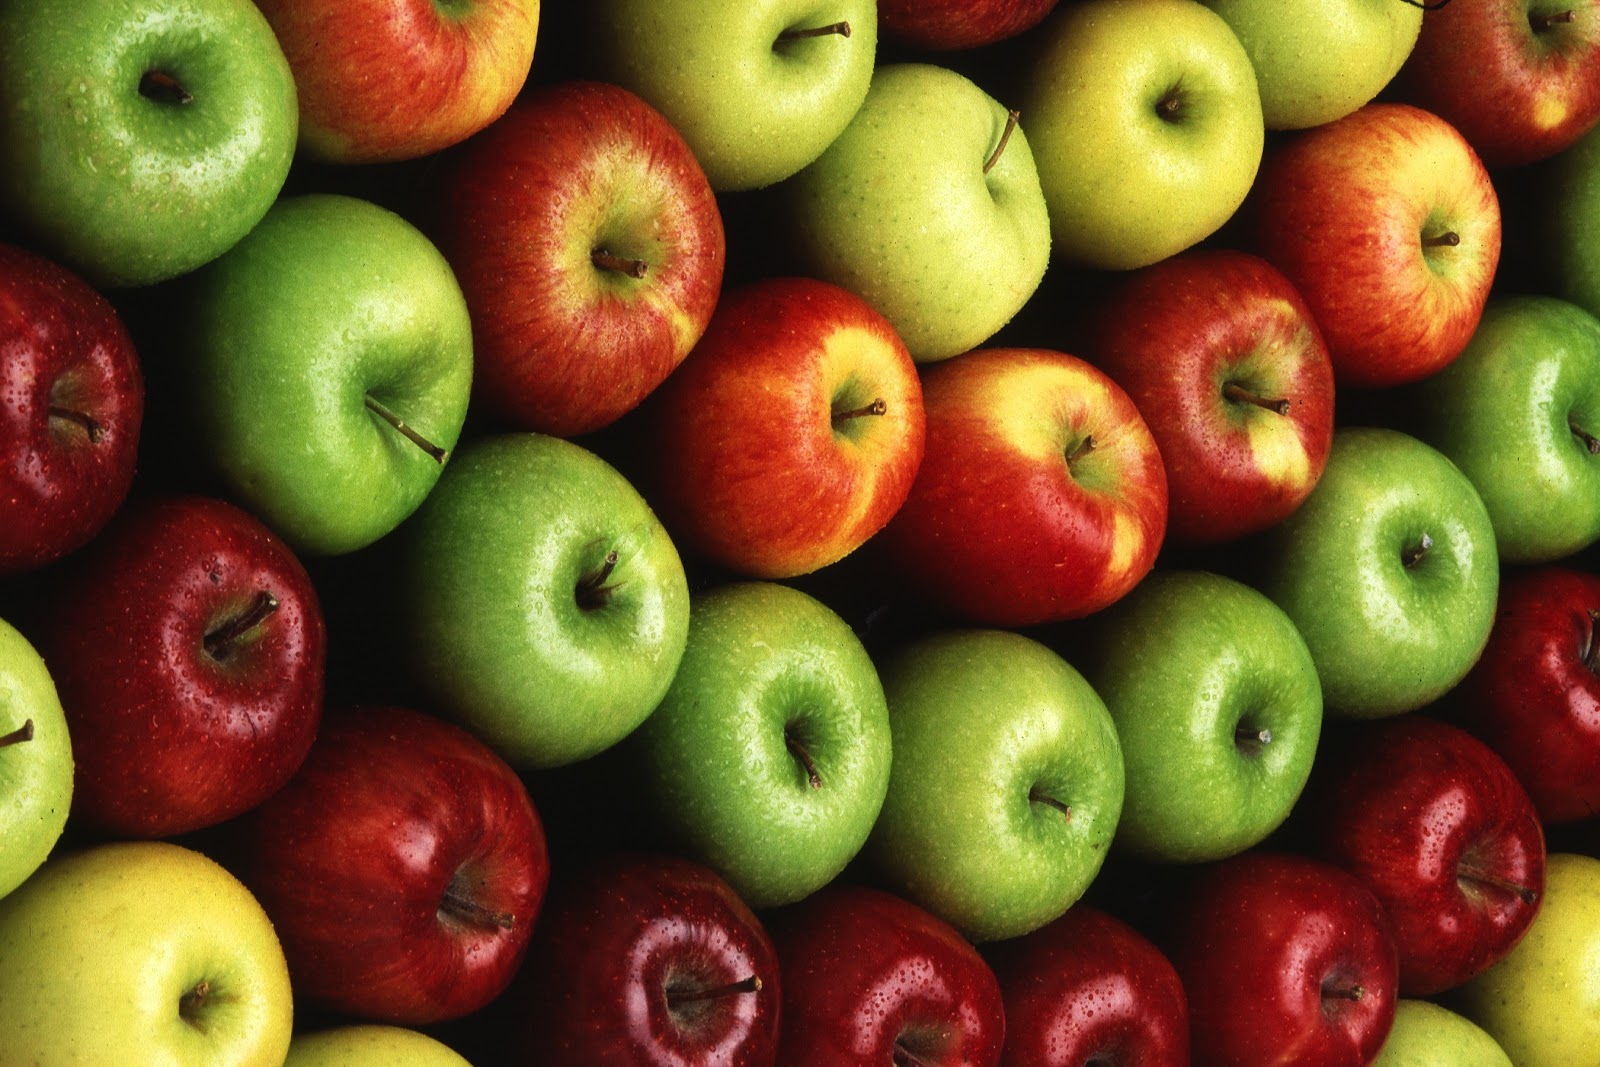 According to Wikipedia original apples come from Central Asia. There are multiple varieties of them native to Kyrgyzstan.